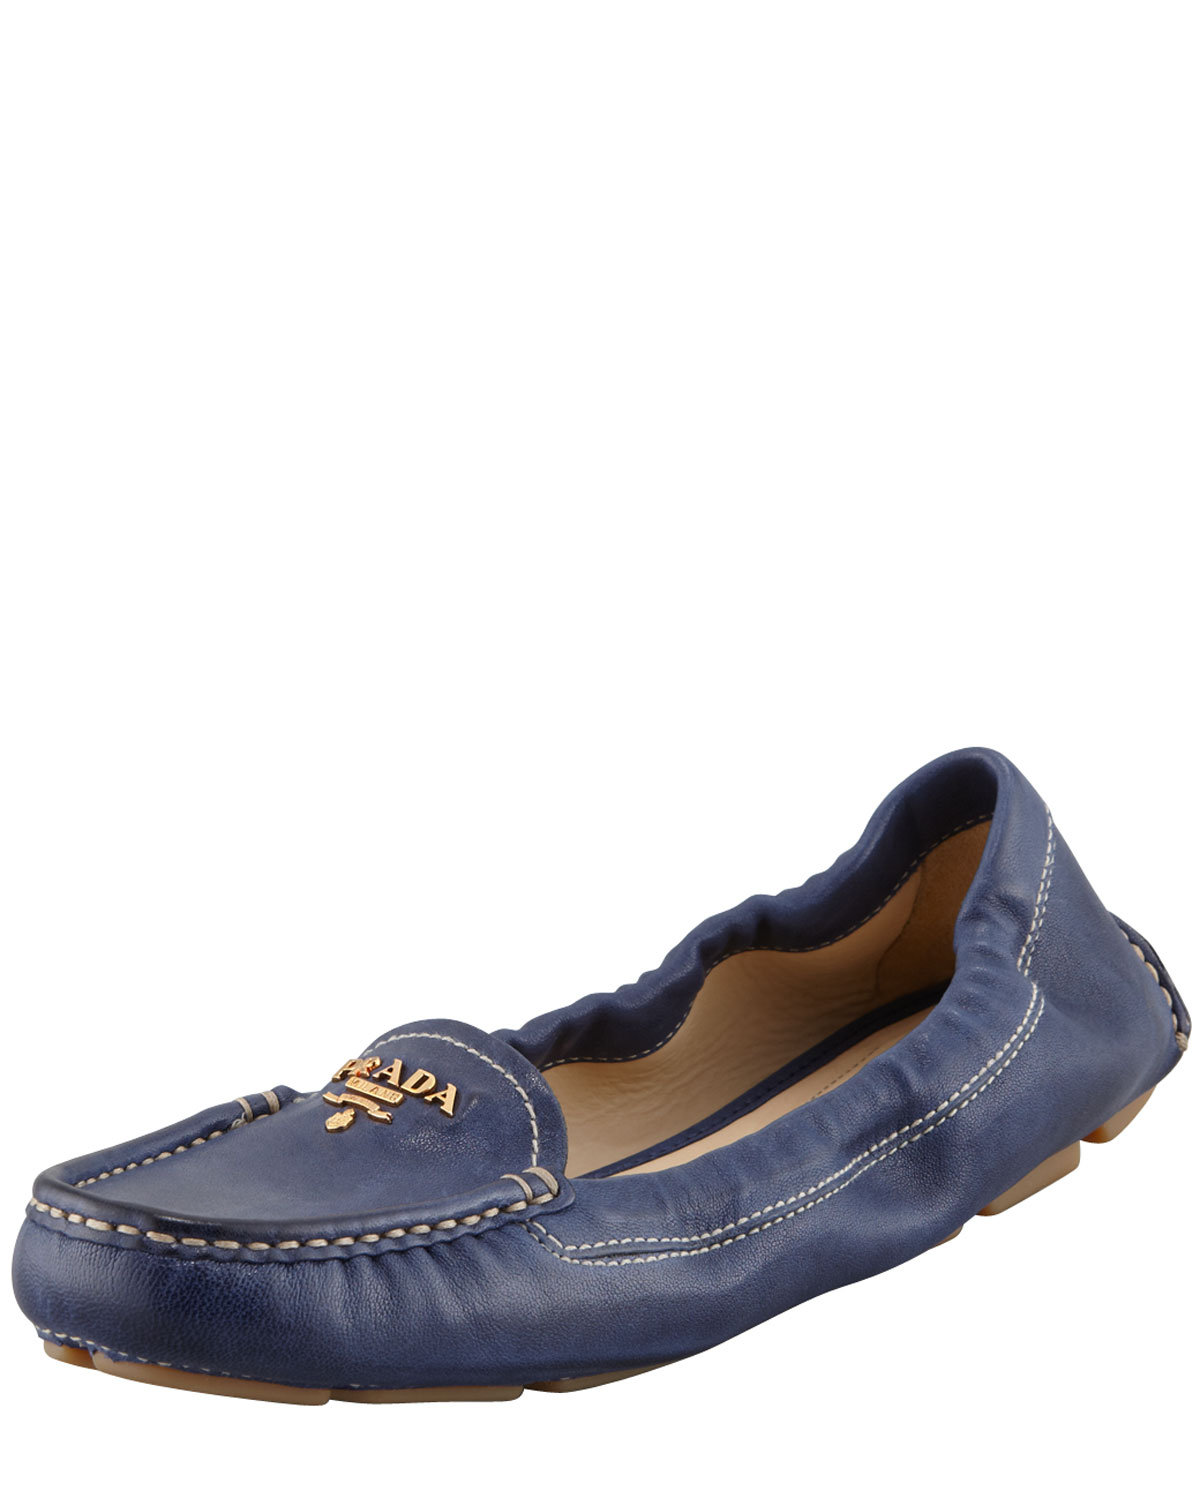 ba4d62d5 canada prada loafer shoes for women eb3a4 3ee68